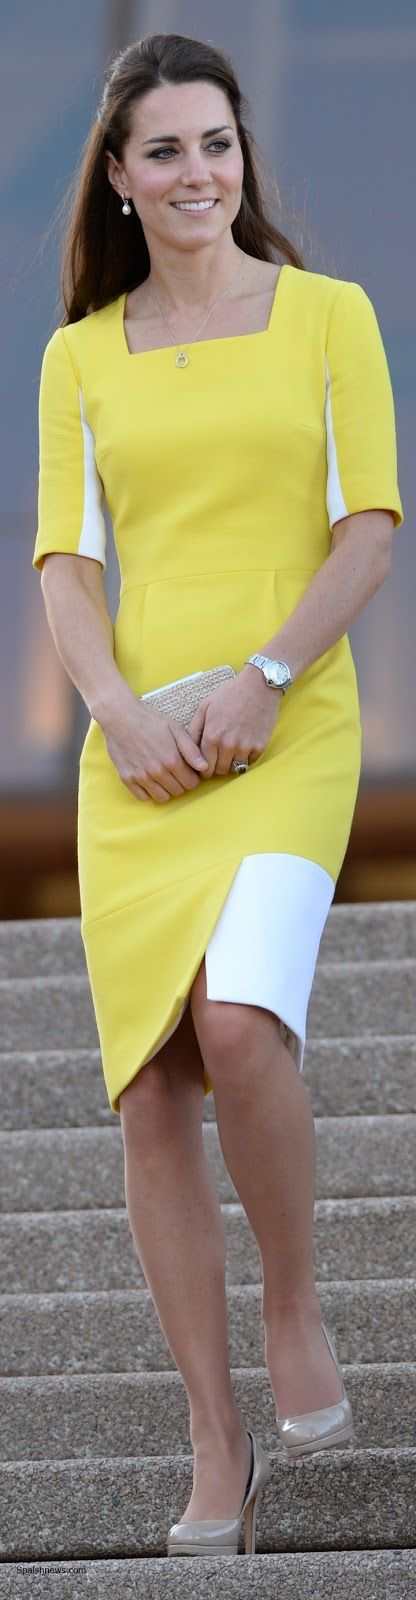 Catherine, Duchess of Cambridge, aka Kate Middleton, in Sydney, Australia. She is wearing a customized dress by Roksanda Ilincic, pearl drop earrings by Annoushka, her Natalie clutch and Sledge Heels from LK Bennett. 4/16/14